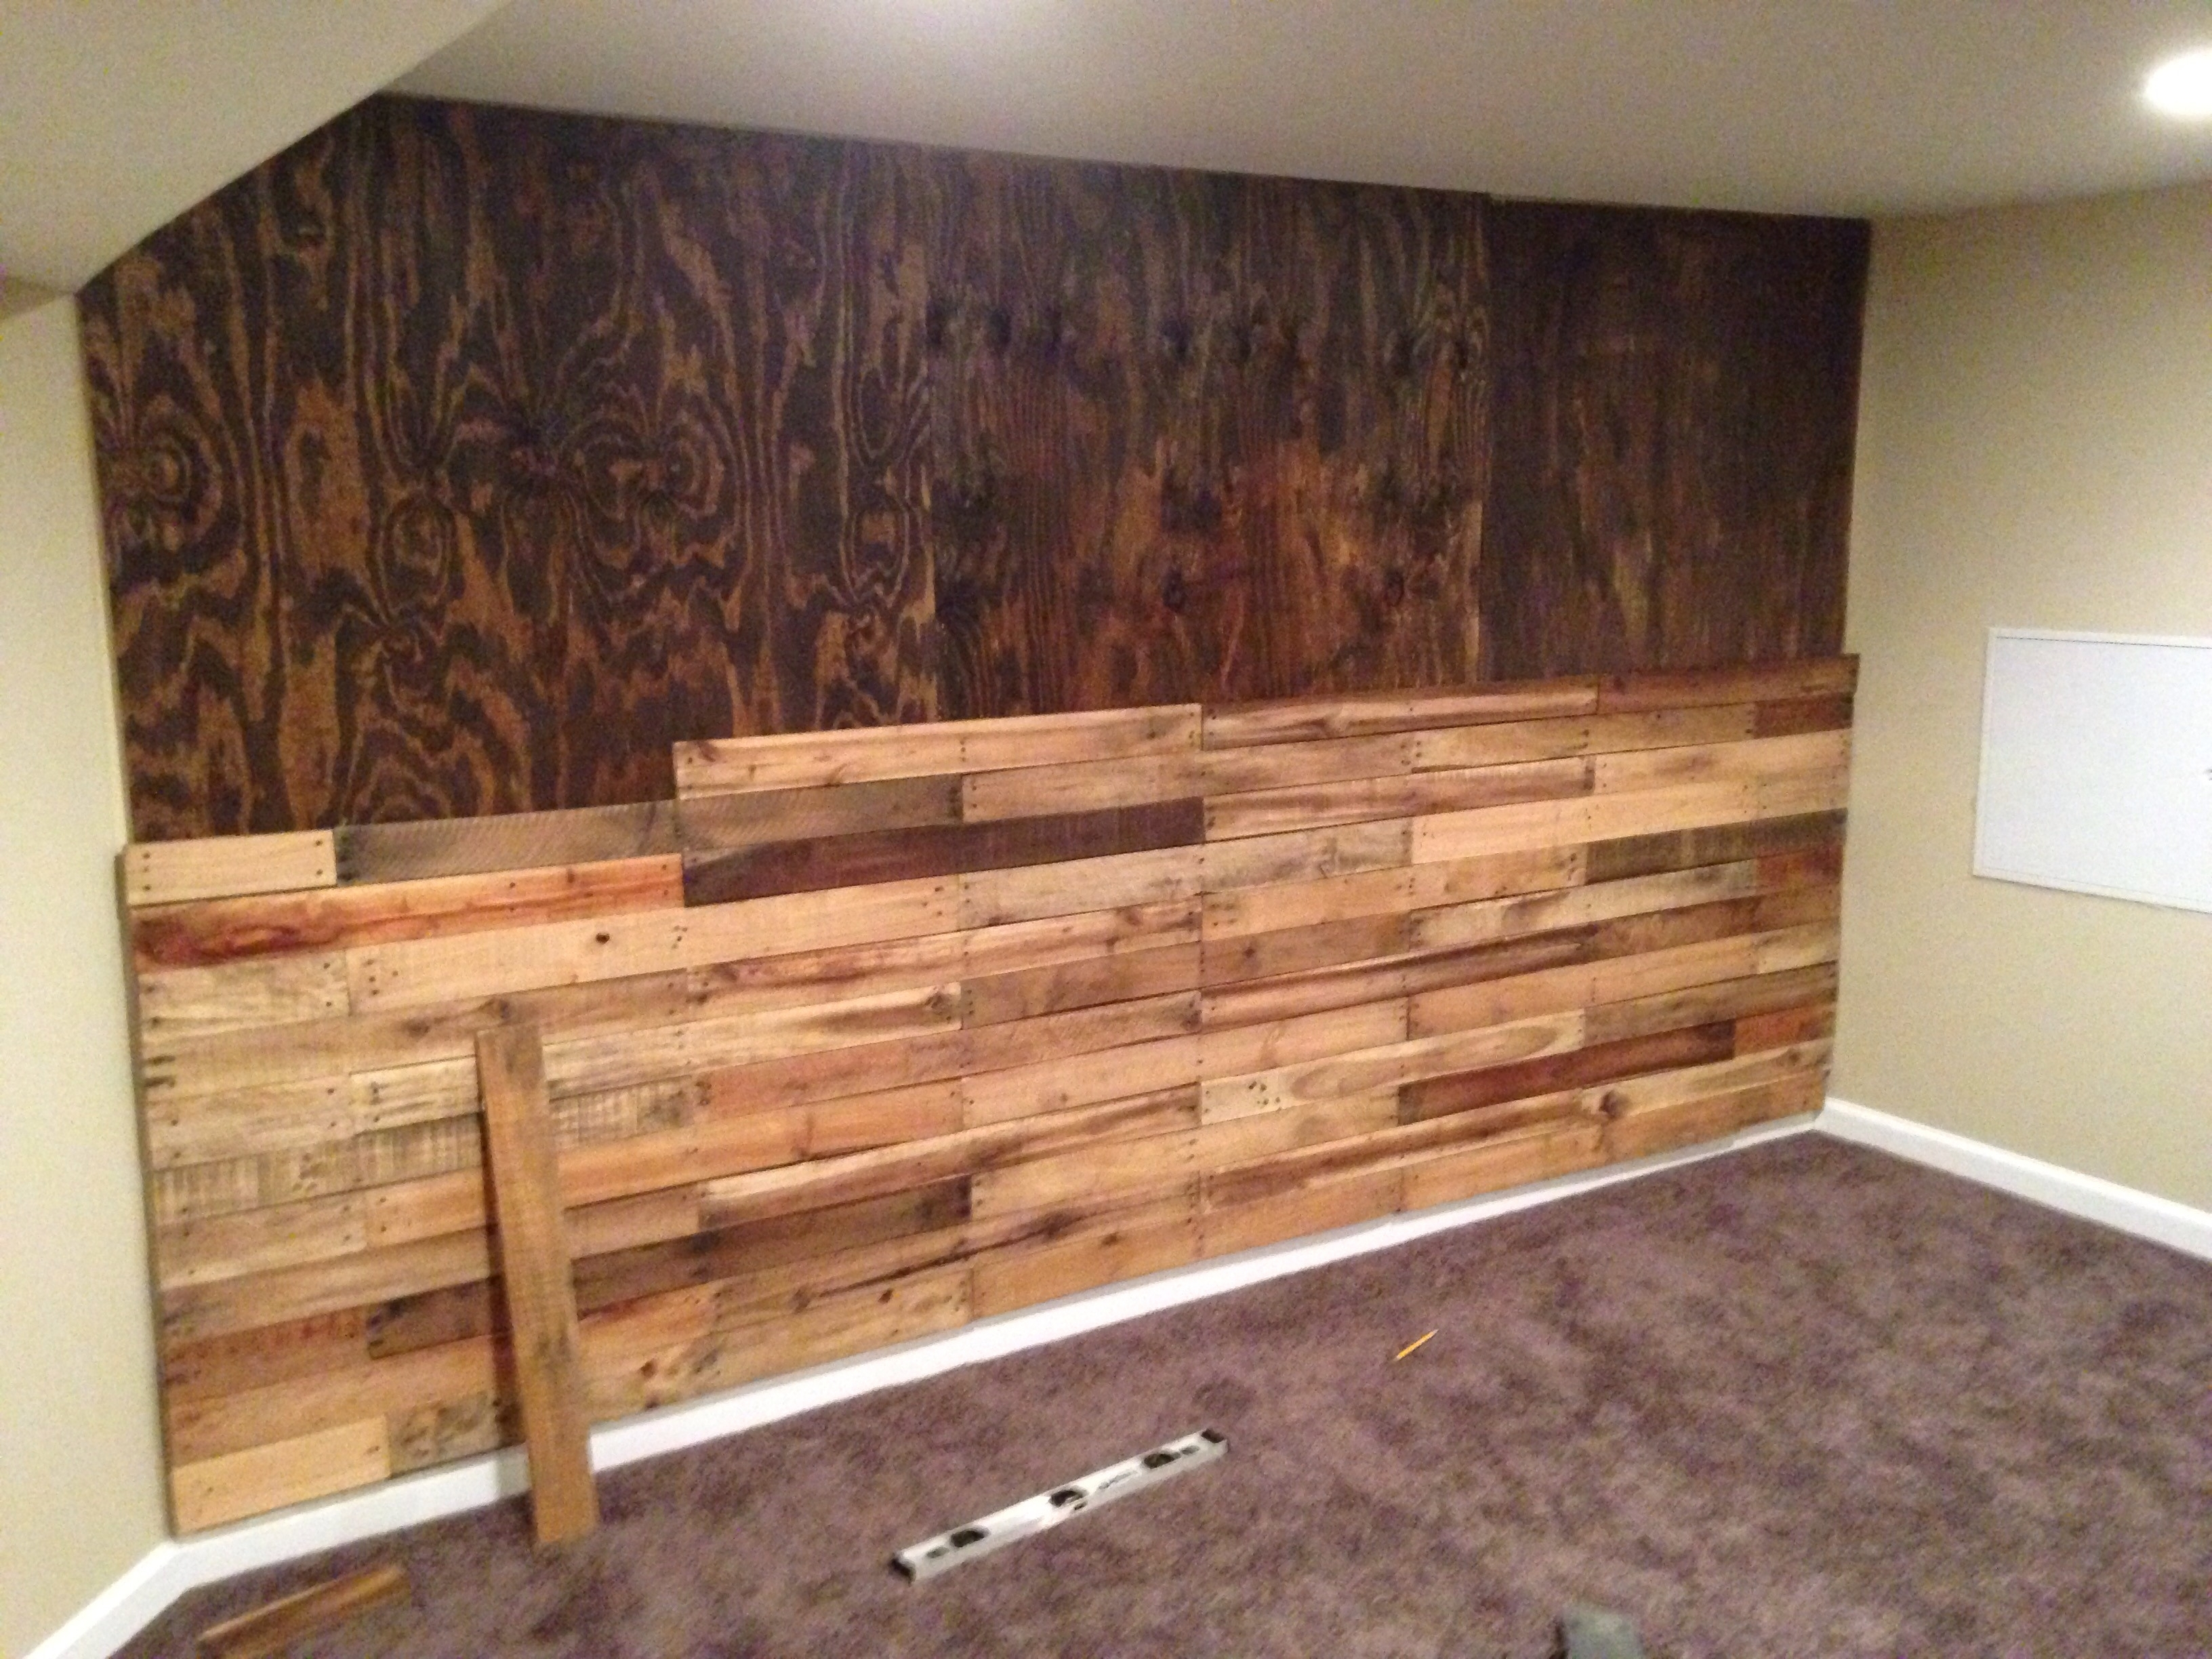 Pallet Accent Wall! – Album On Imgur Regarding 2017 Wall Accents Made From Pallets (View 10 of 15)